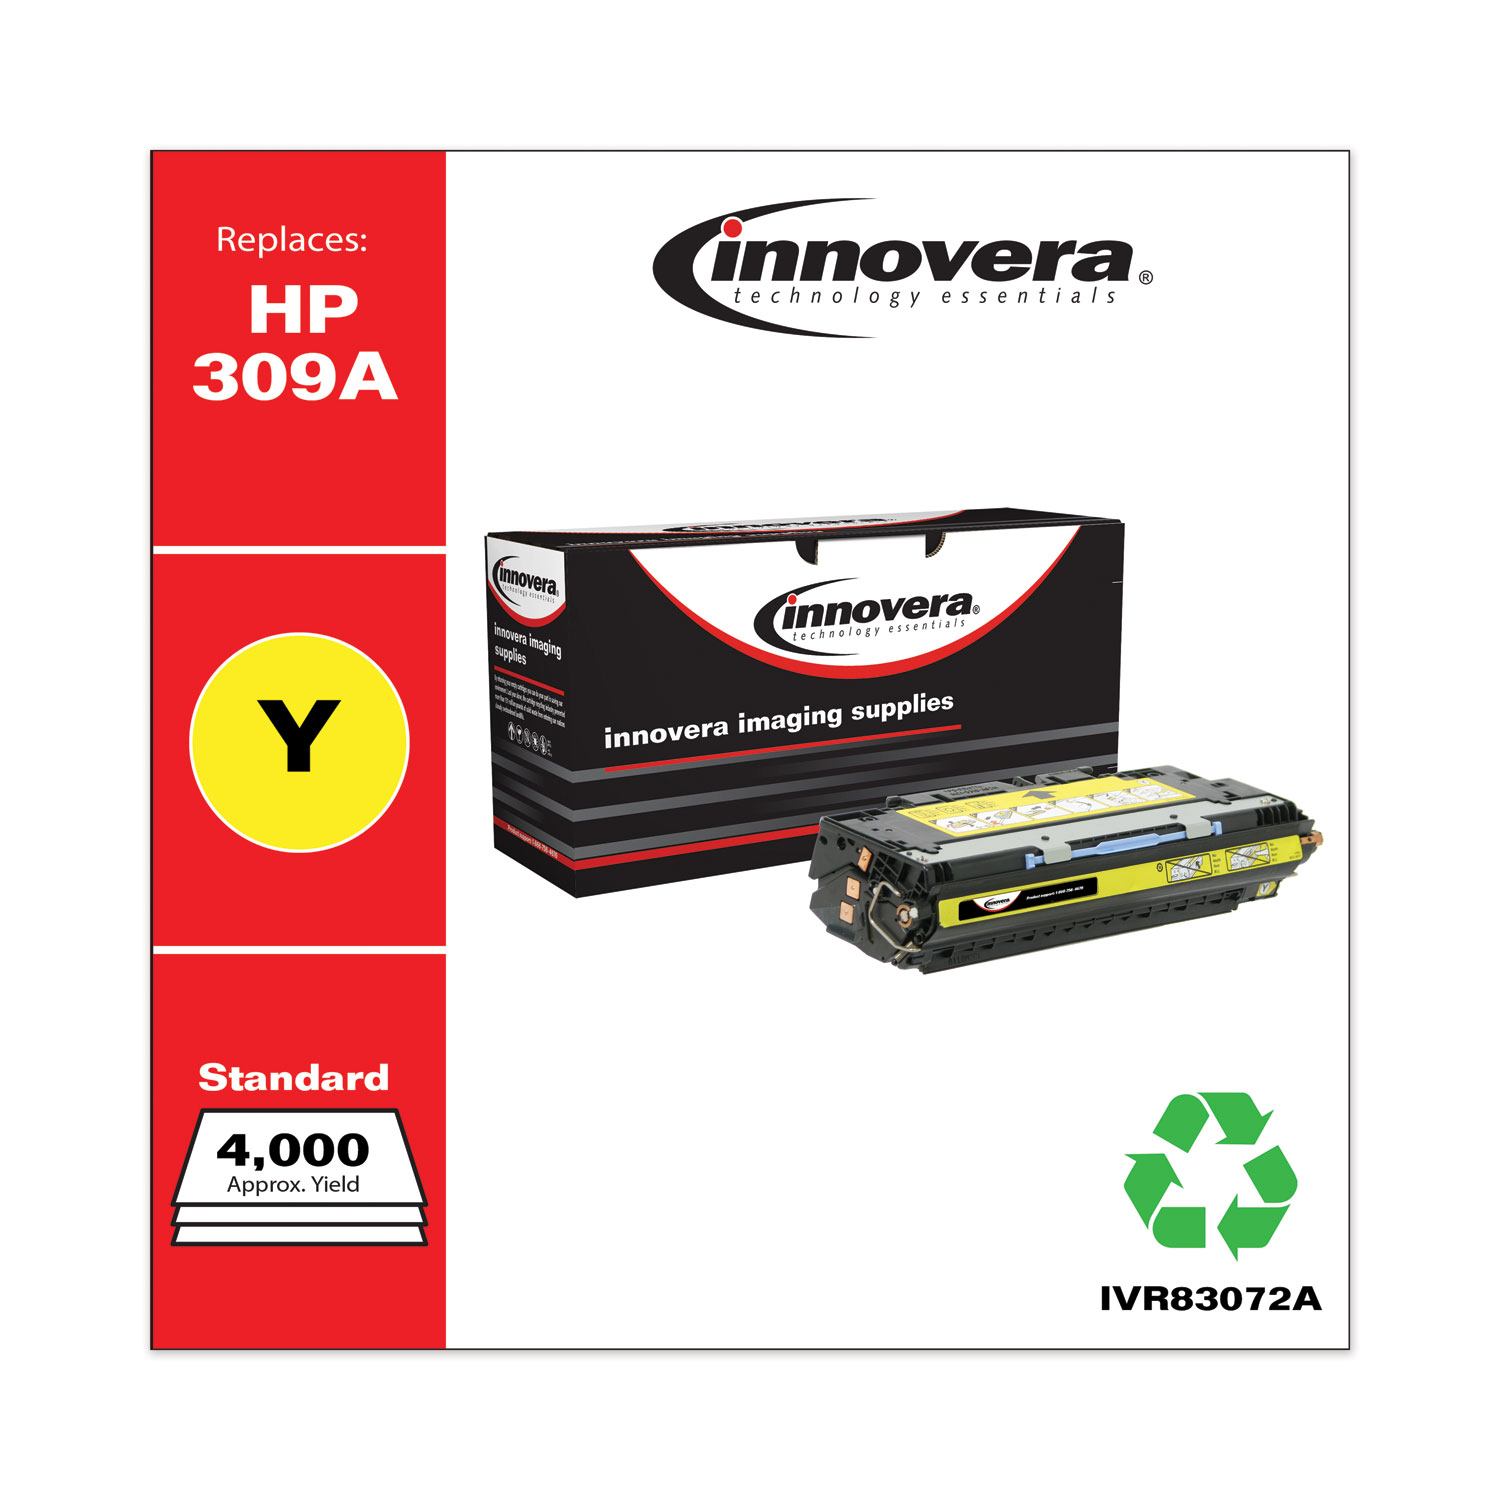 Remanufactured Yellow Toner, Replacement for HP 309A (Q2672A), 4,000 Page-Yield IVR83072A